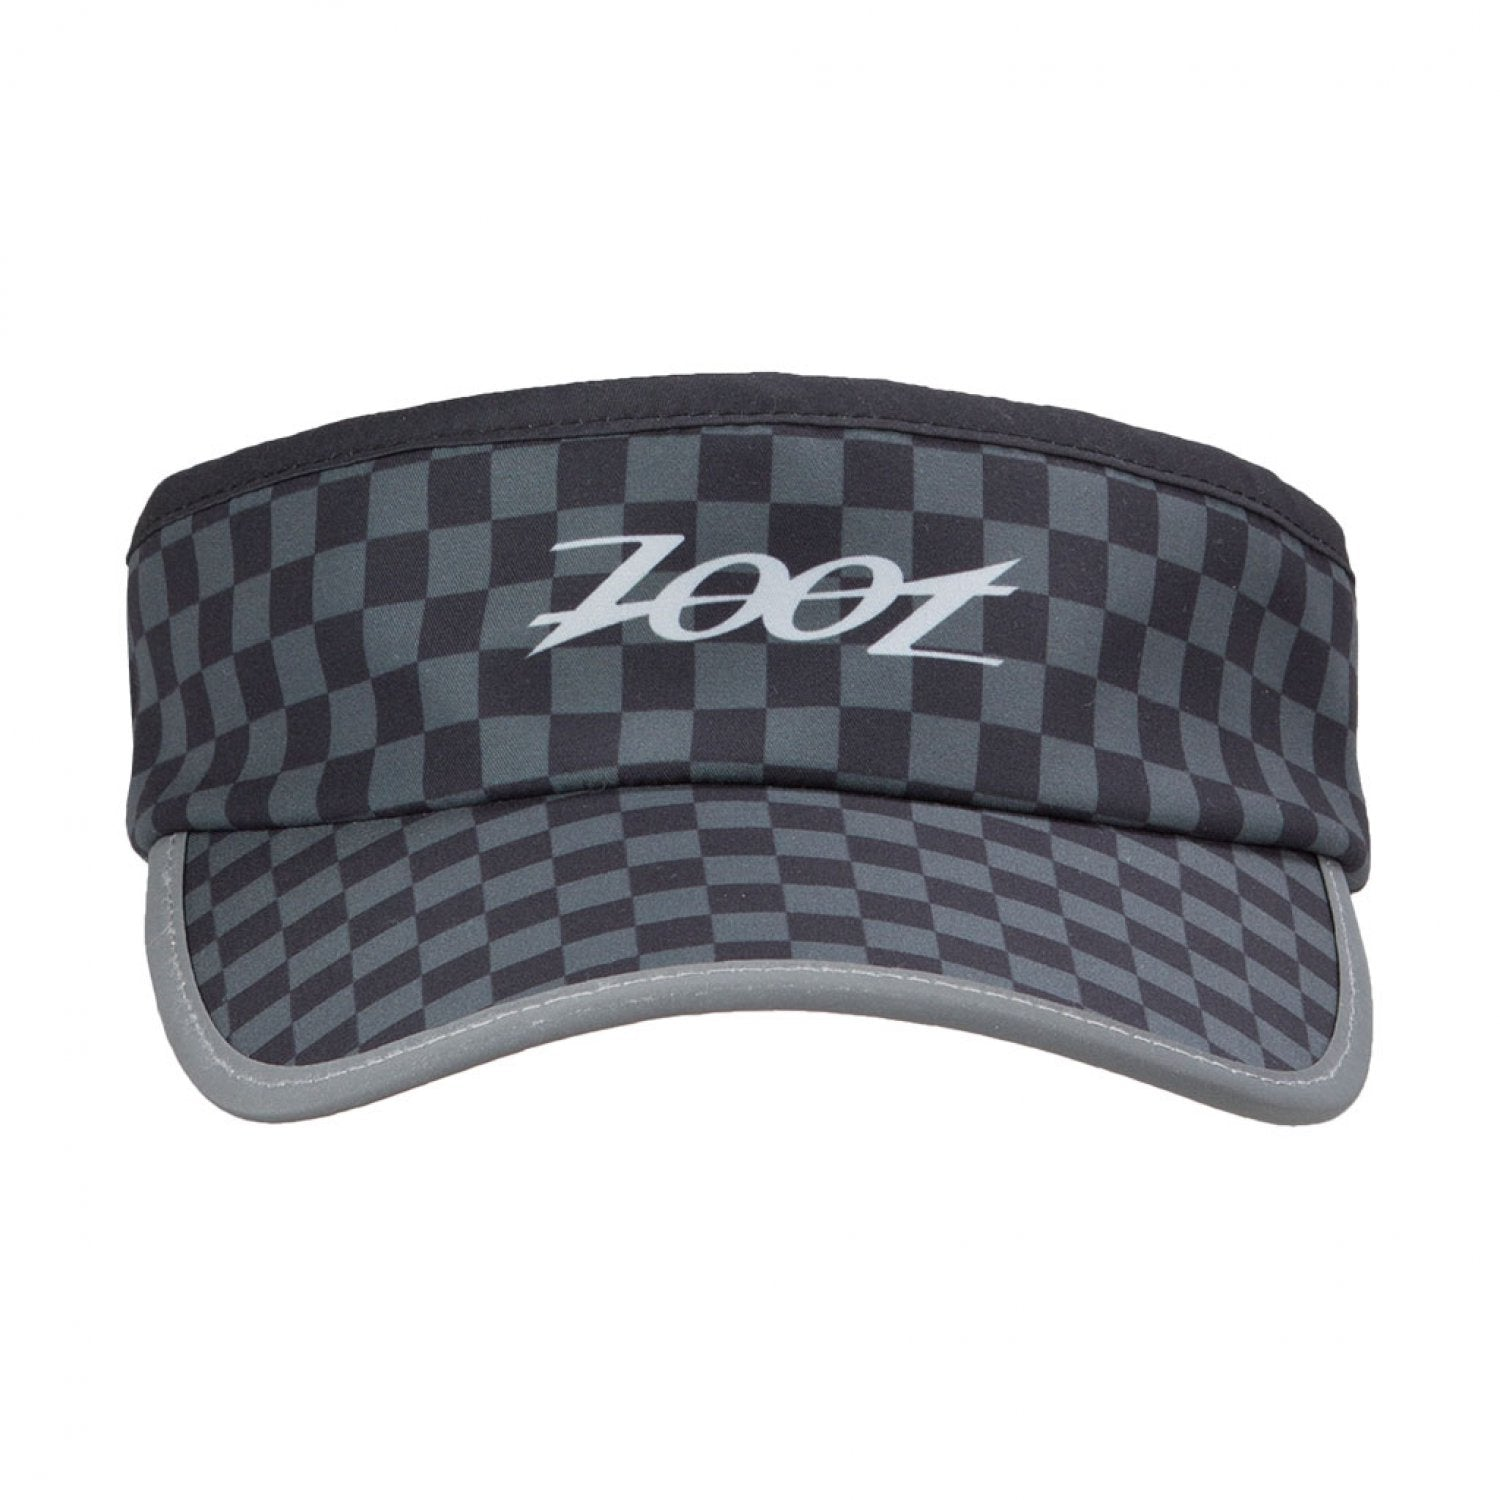 VISERA STRETCH VISOR (3 colores unisex)